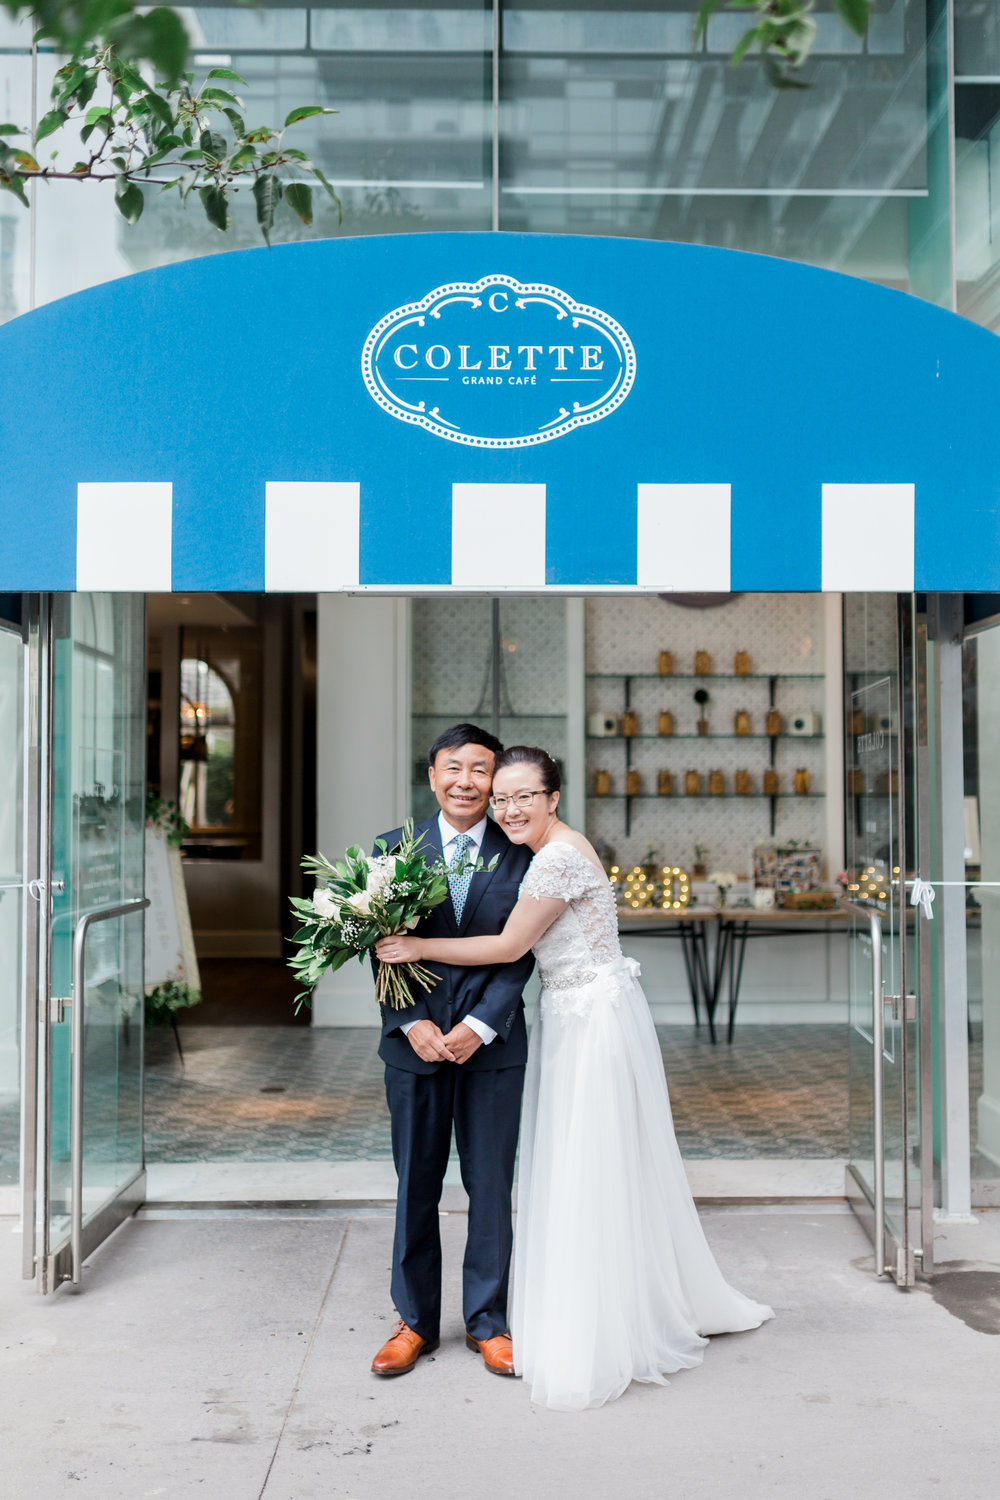 Colette Grand Cafe Wedding - Ceremony -8.jpg